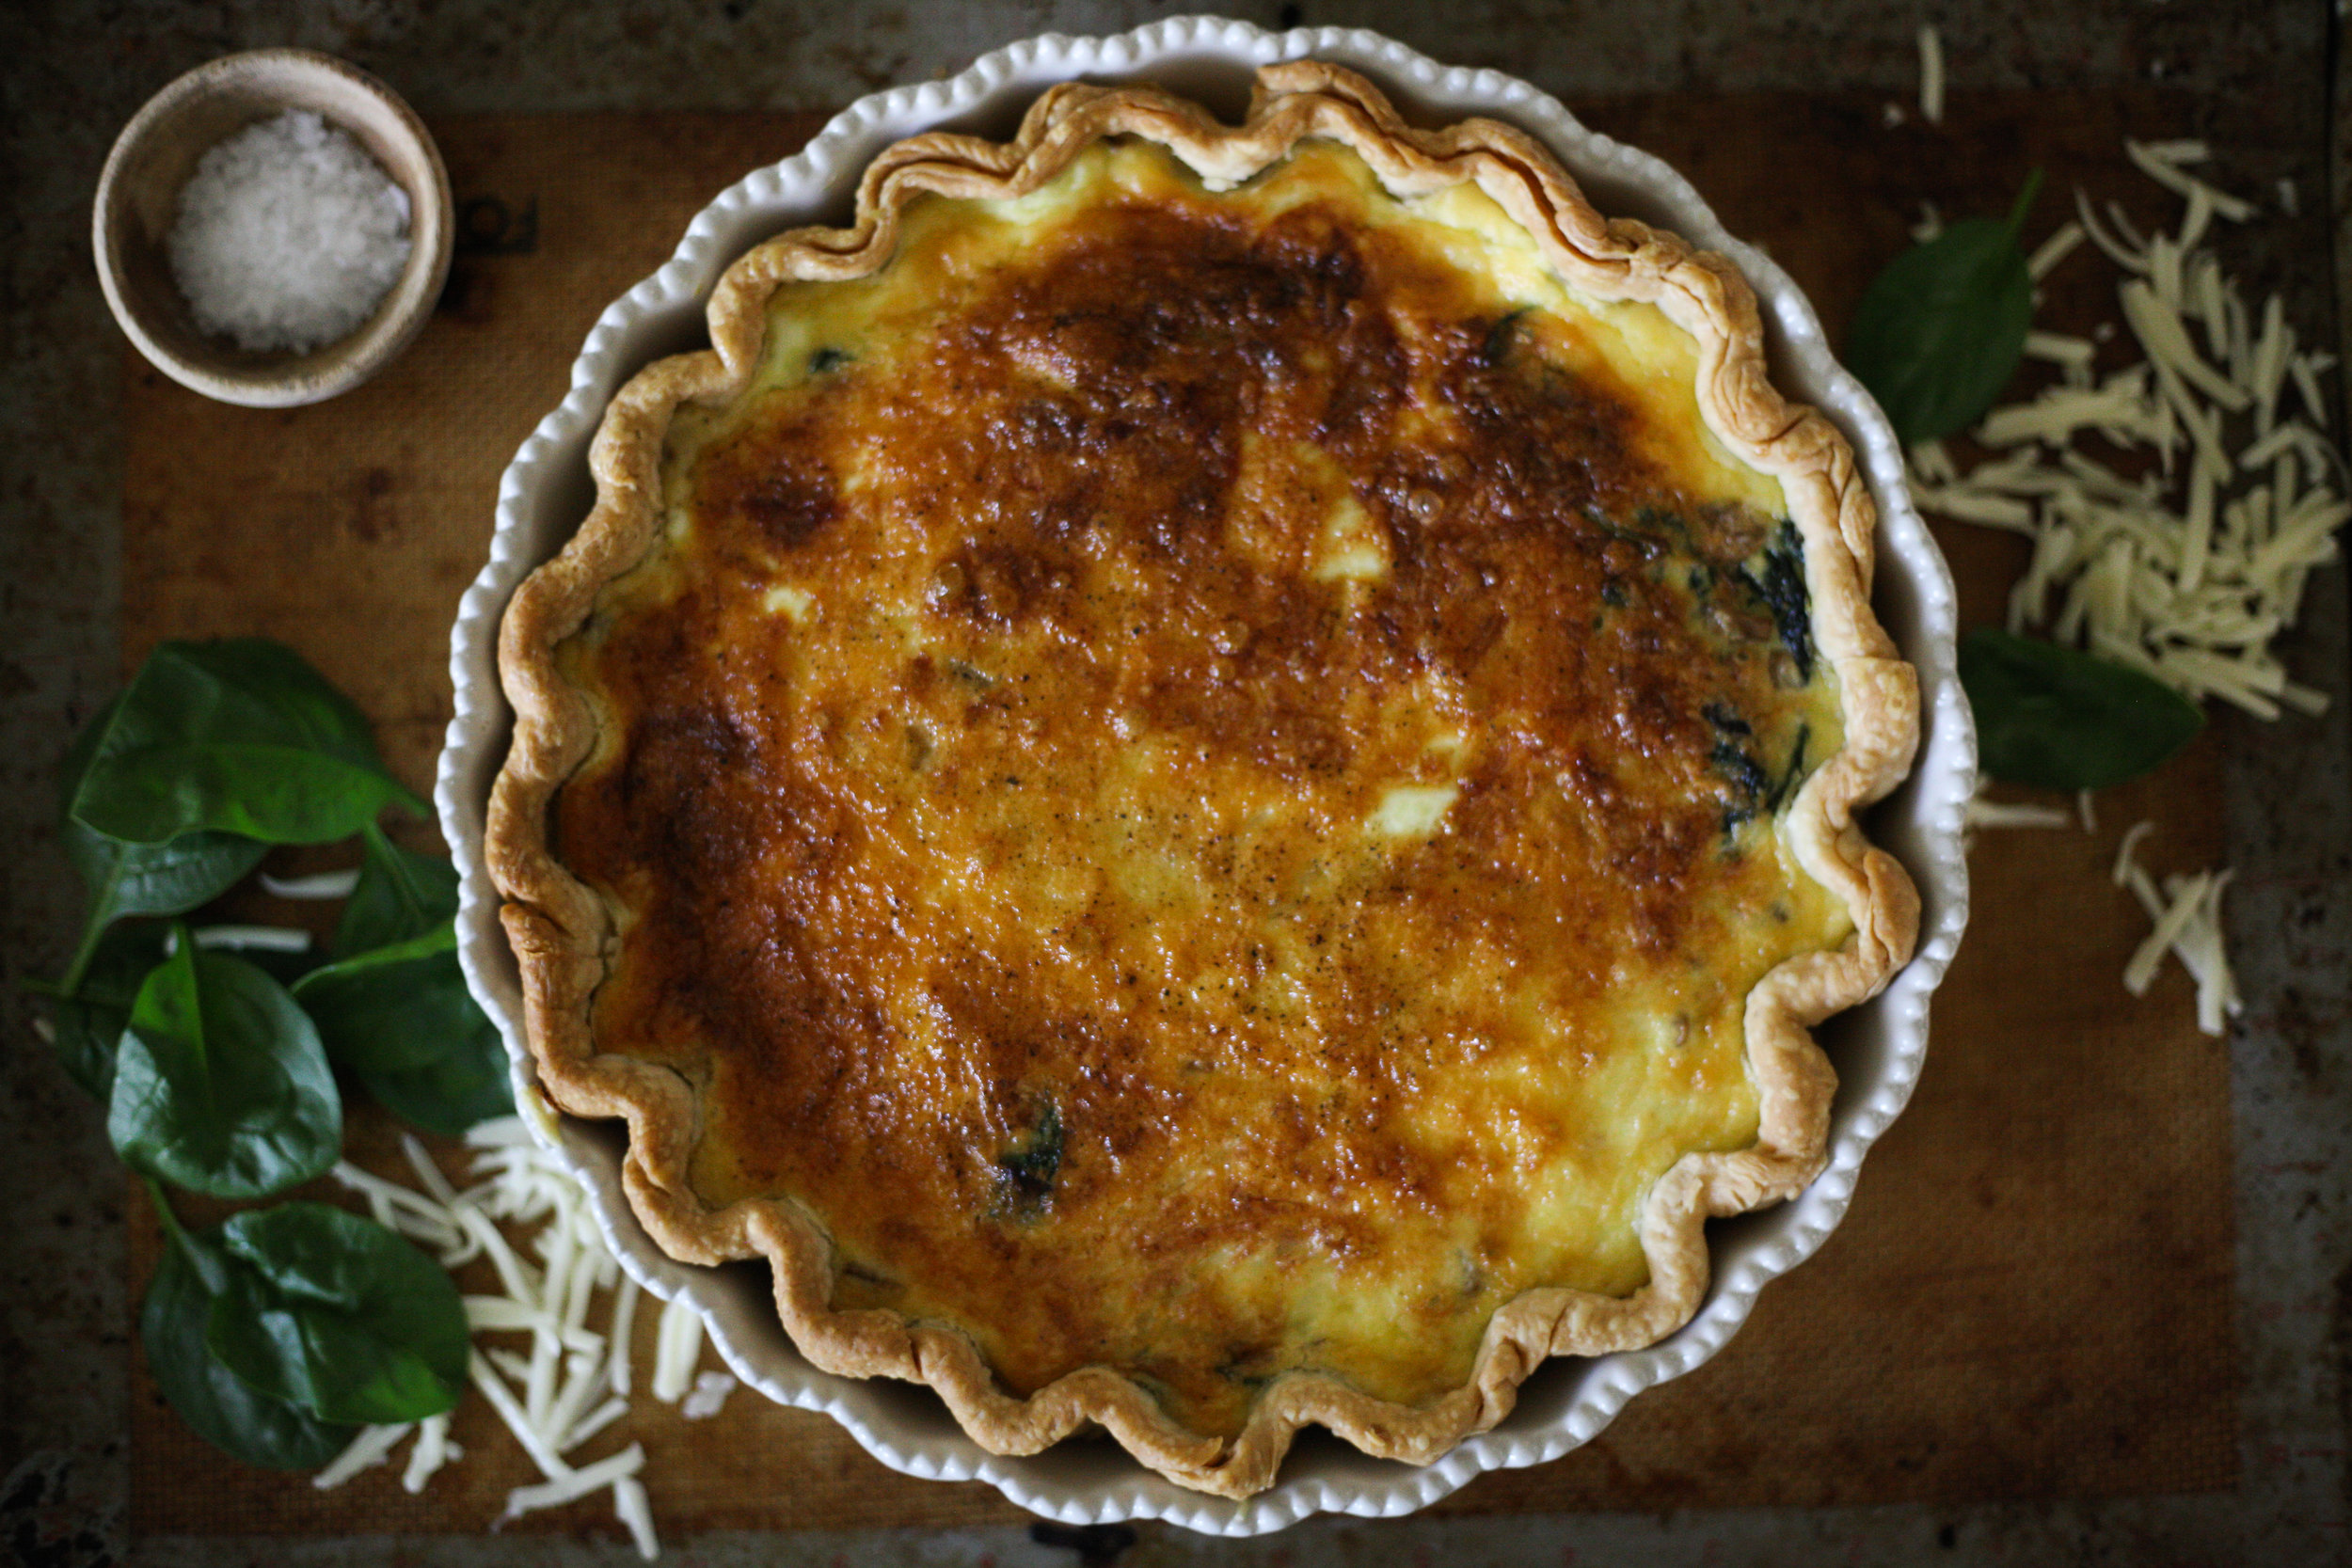 Magnolia Table Cookbook - Spinach, Mushroom, and Swiss Cheese Quiche